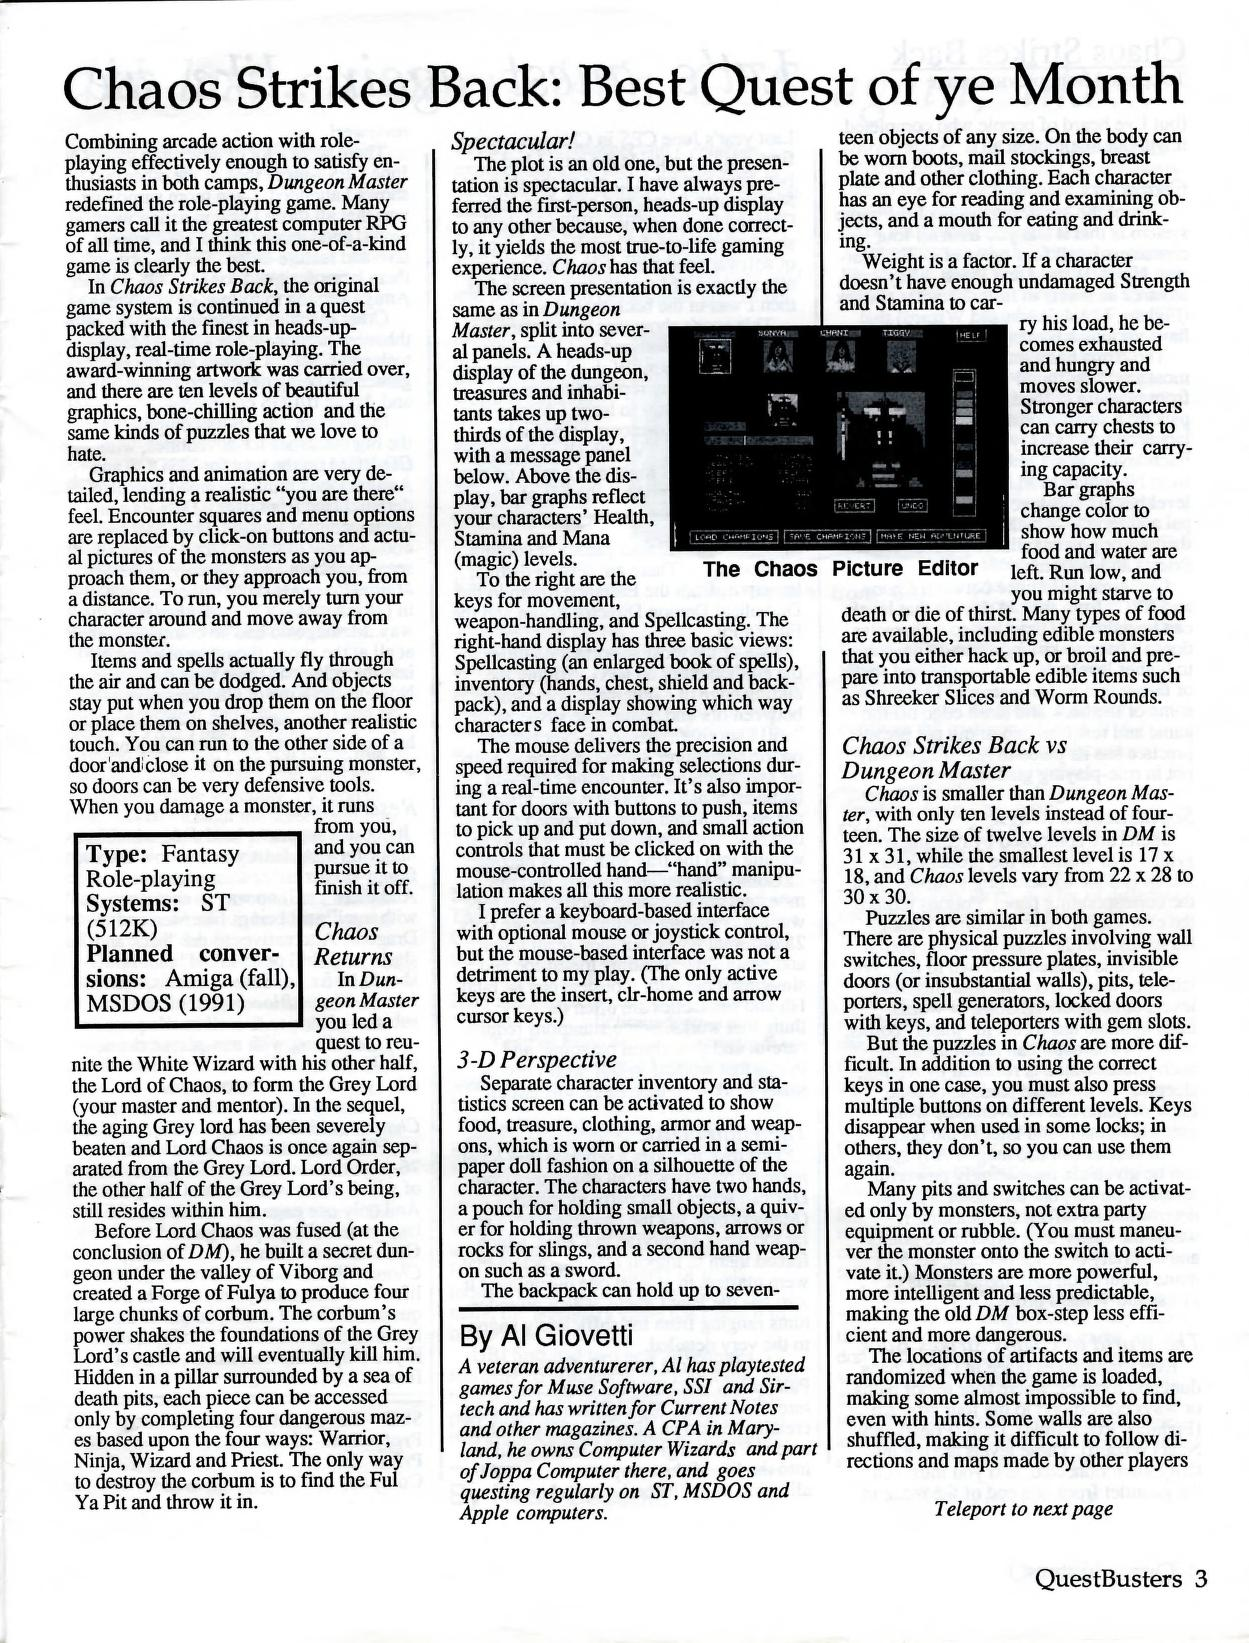 Chaos Strikes Back for Atari ST Review published in American magazine 'QuestBusters', Vol 7 No 8 August 1990, Page 3